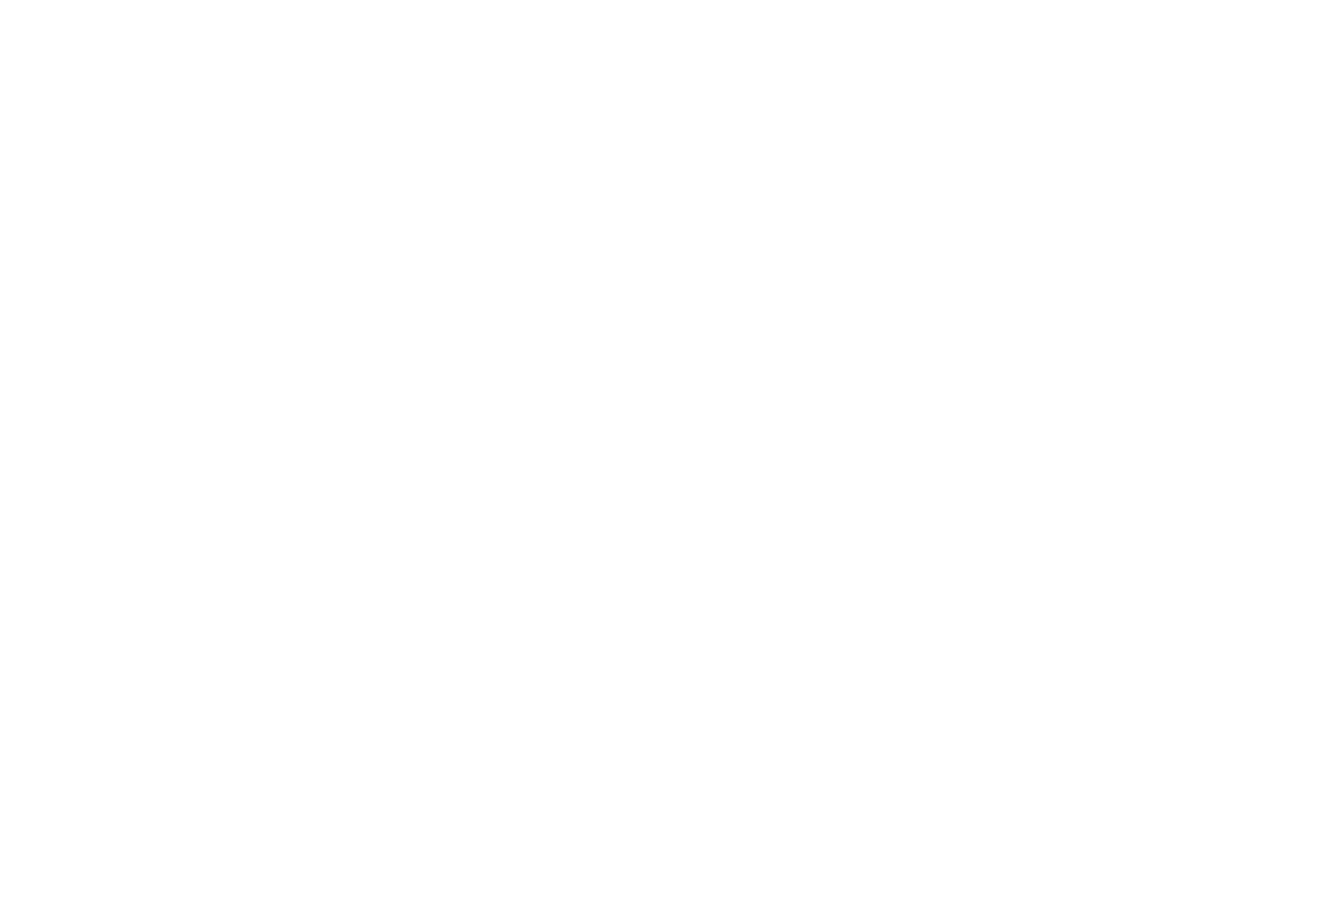 Gardeners' World Spring Fair logo